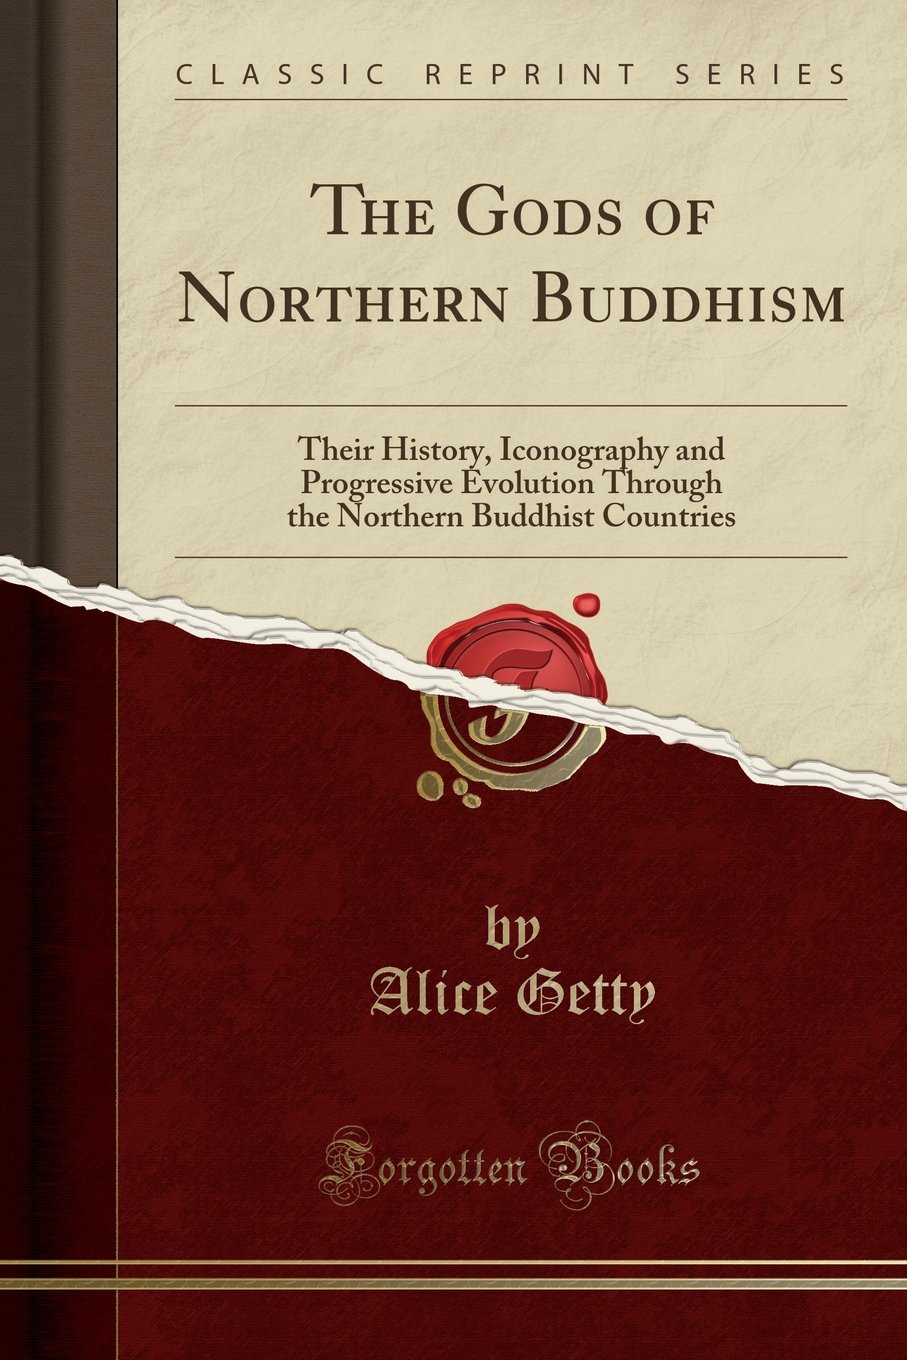 The Gods of Northern Buddhism: Their History, Iconography and Progressive Evolution Through the Northern Buddhist Countries (Classic Reprint)